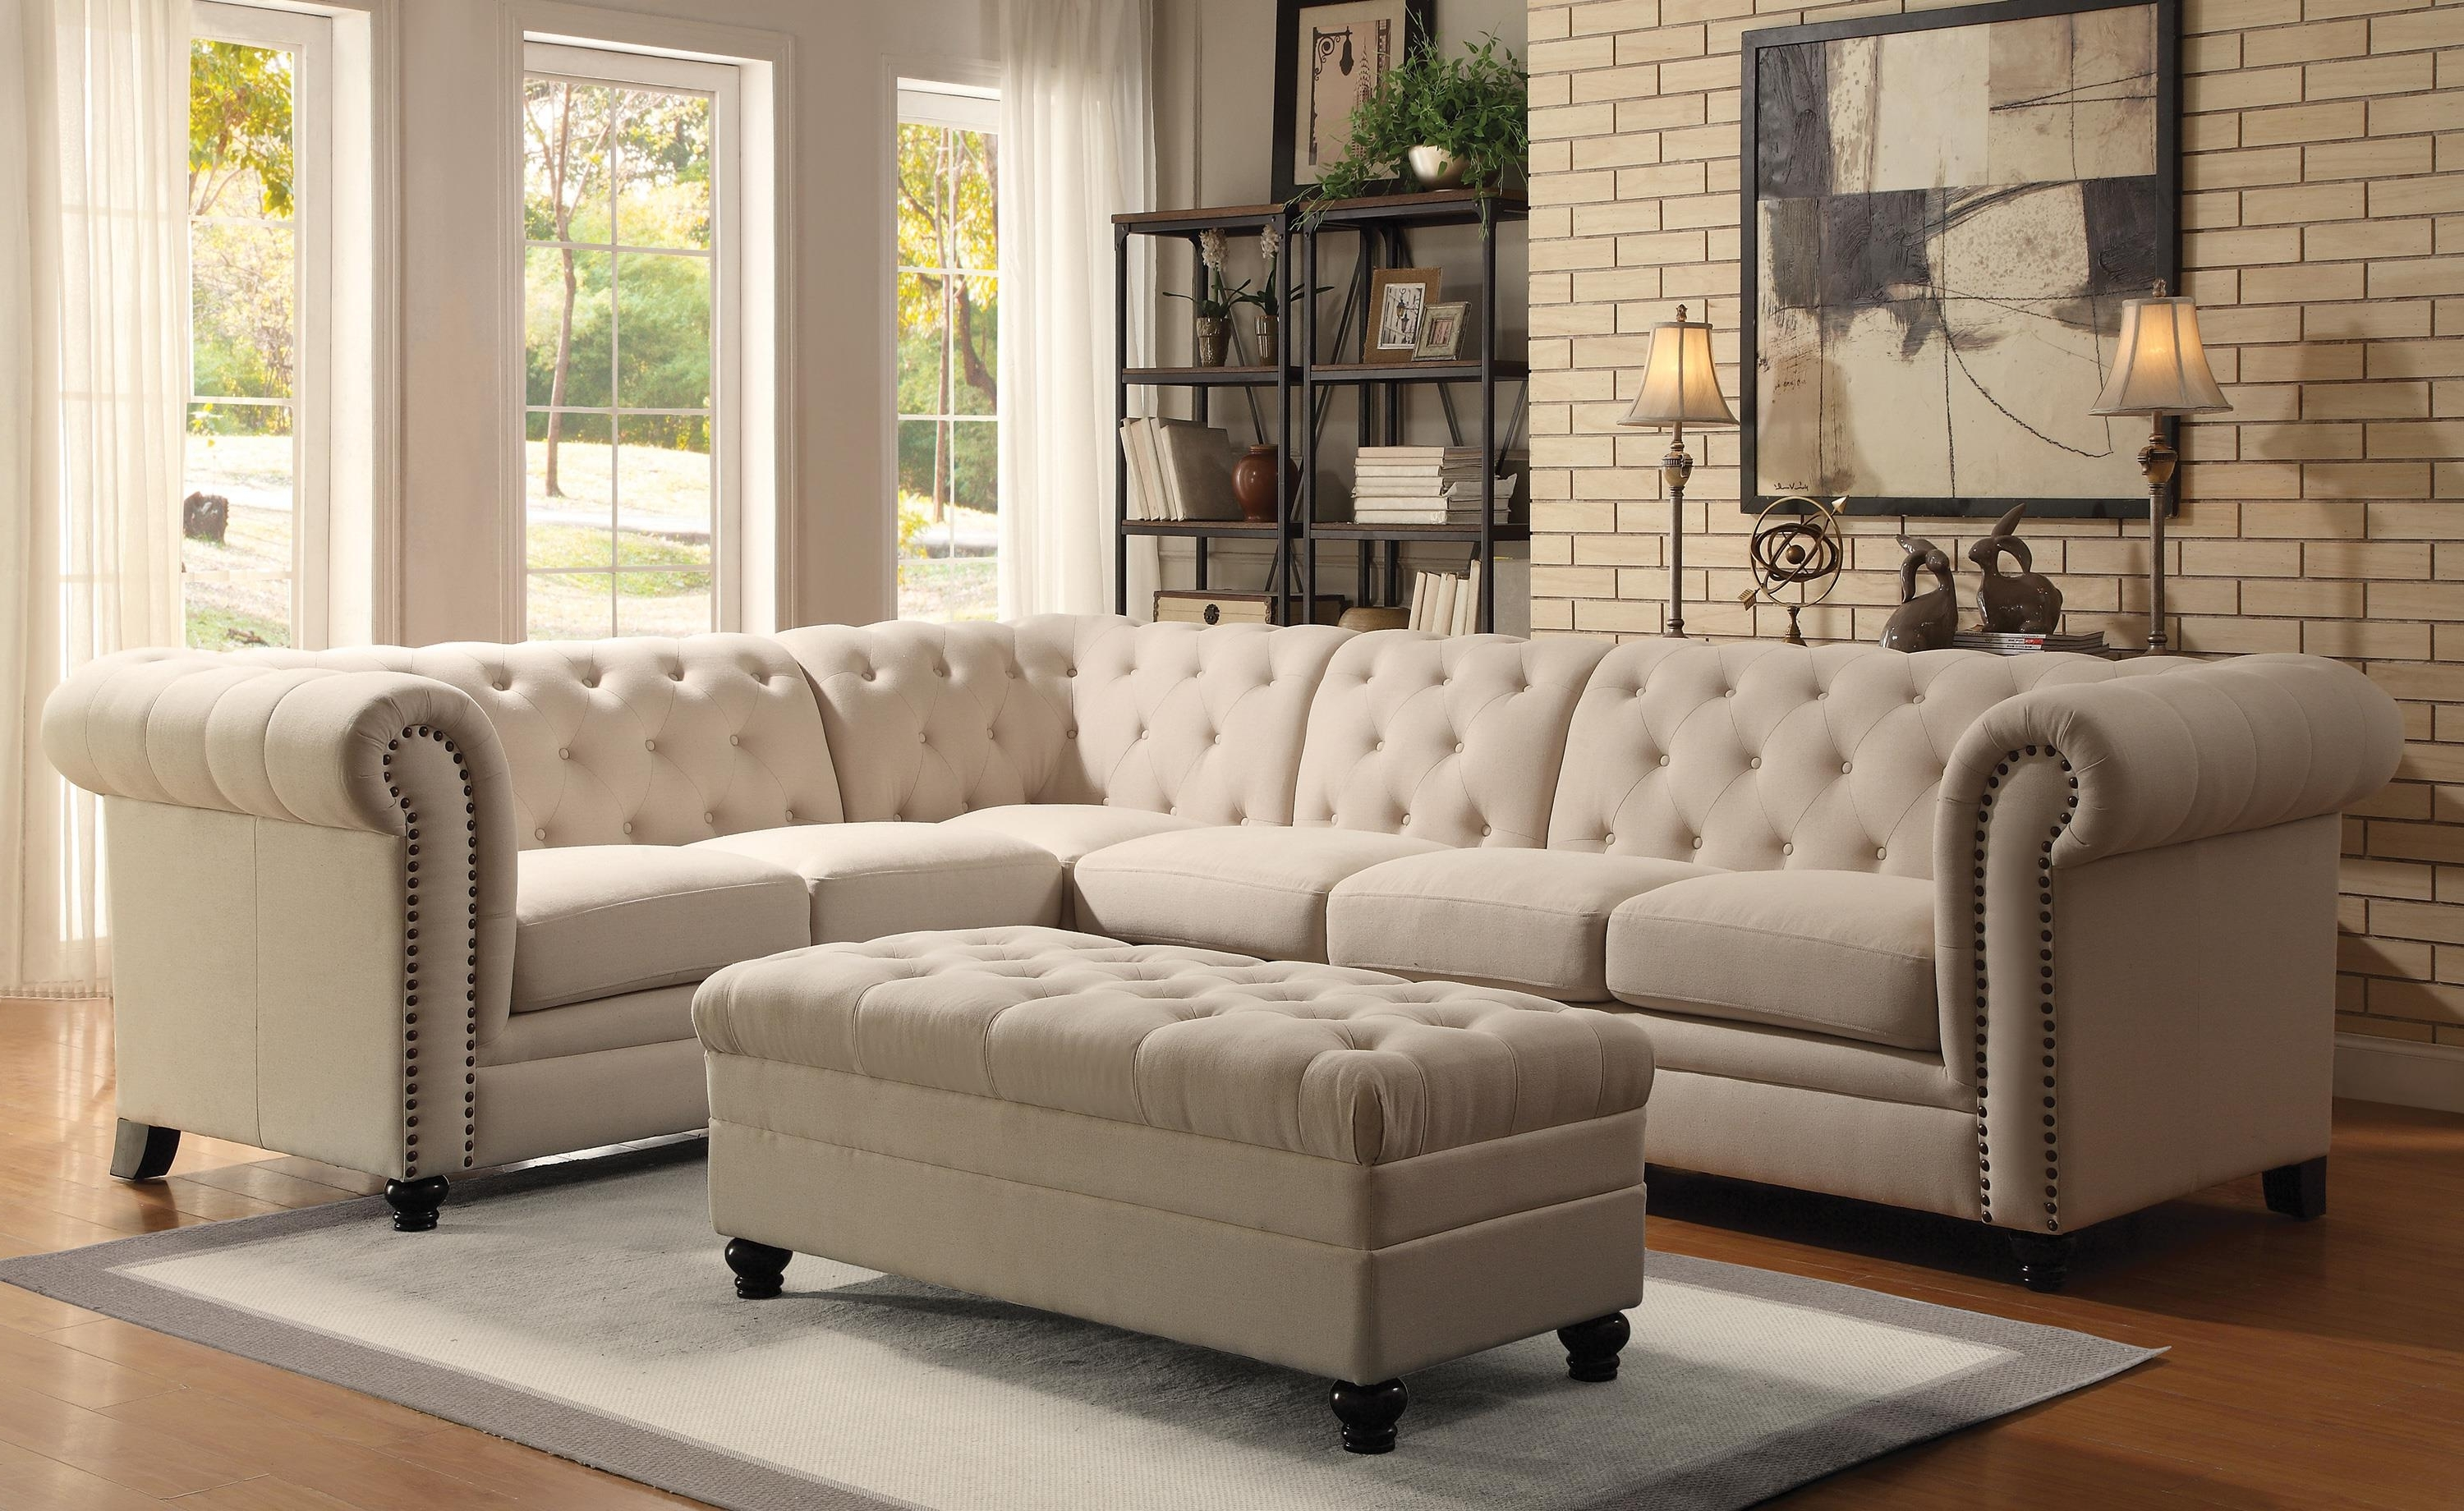 Light Brown Fabric Ashley Furniture Sectional L Sofa Sleeper With Within 2018 Ashley Tufted Sofas (View 14 of 20)